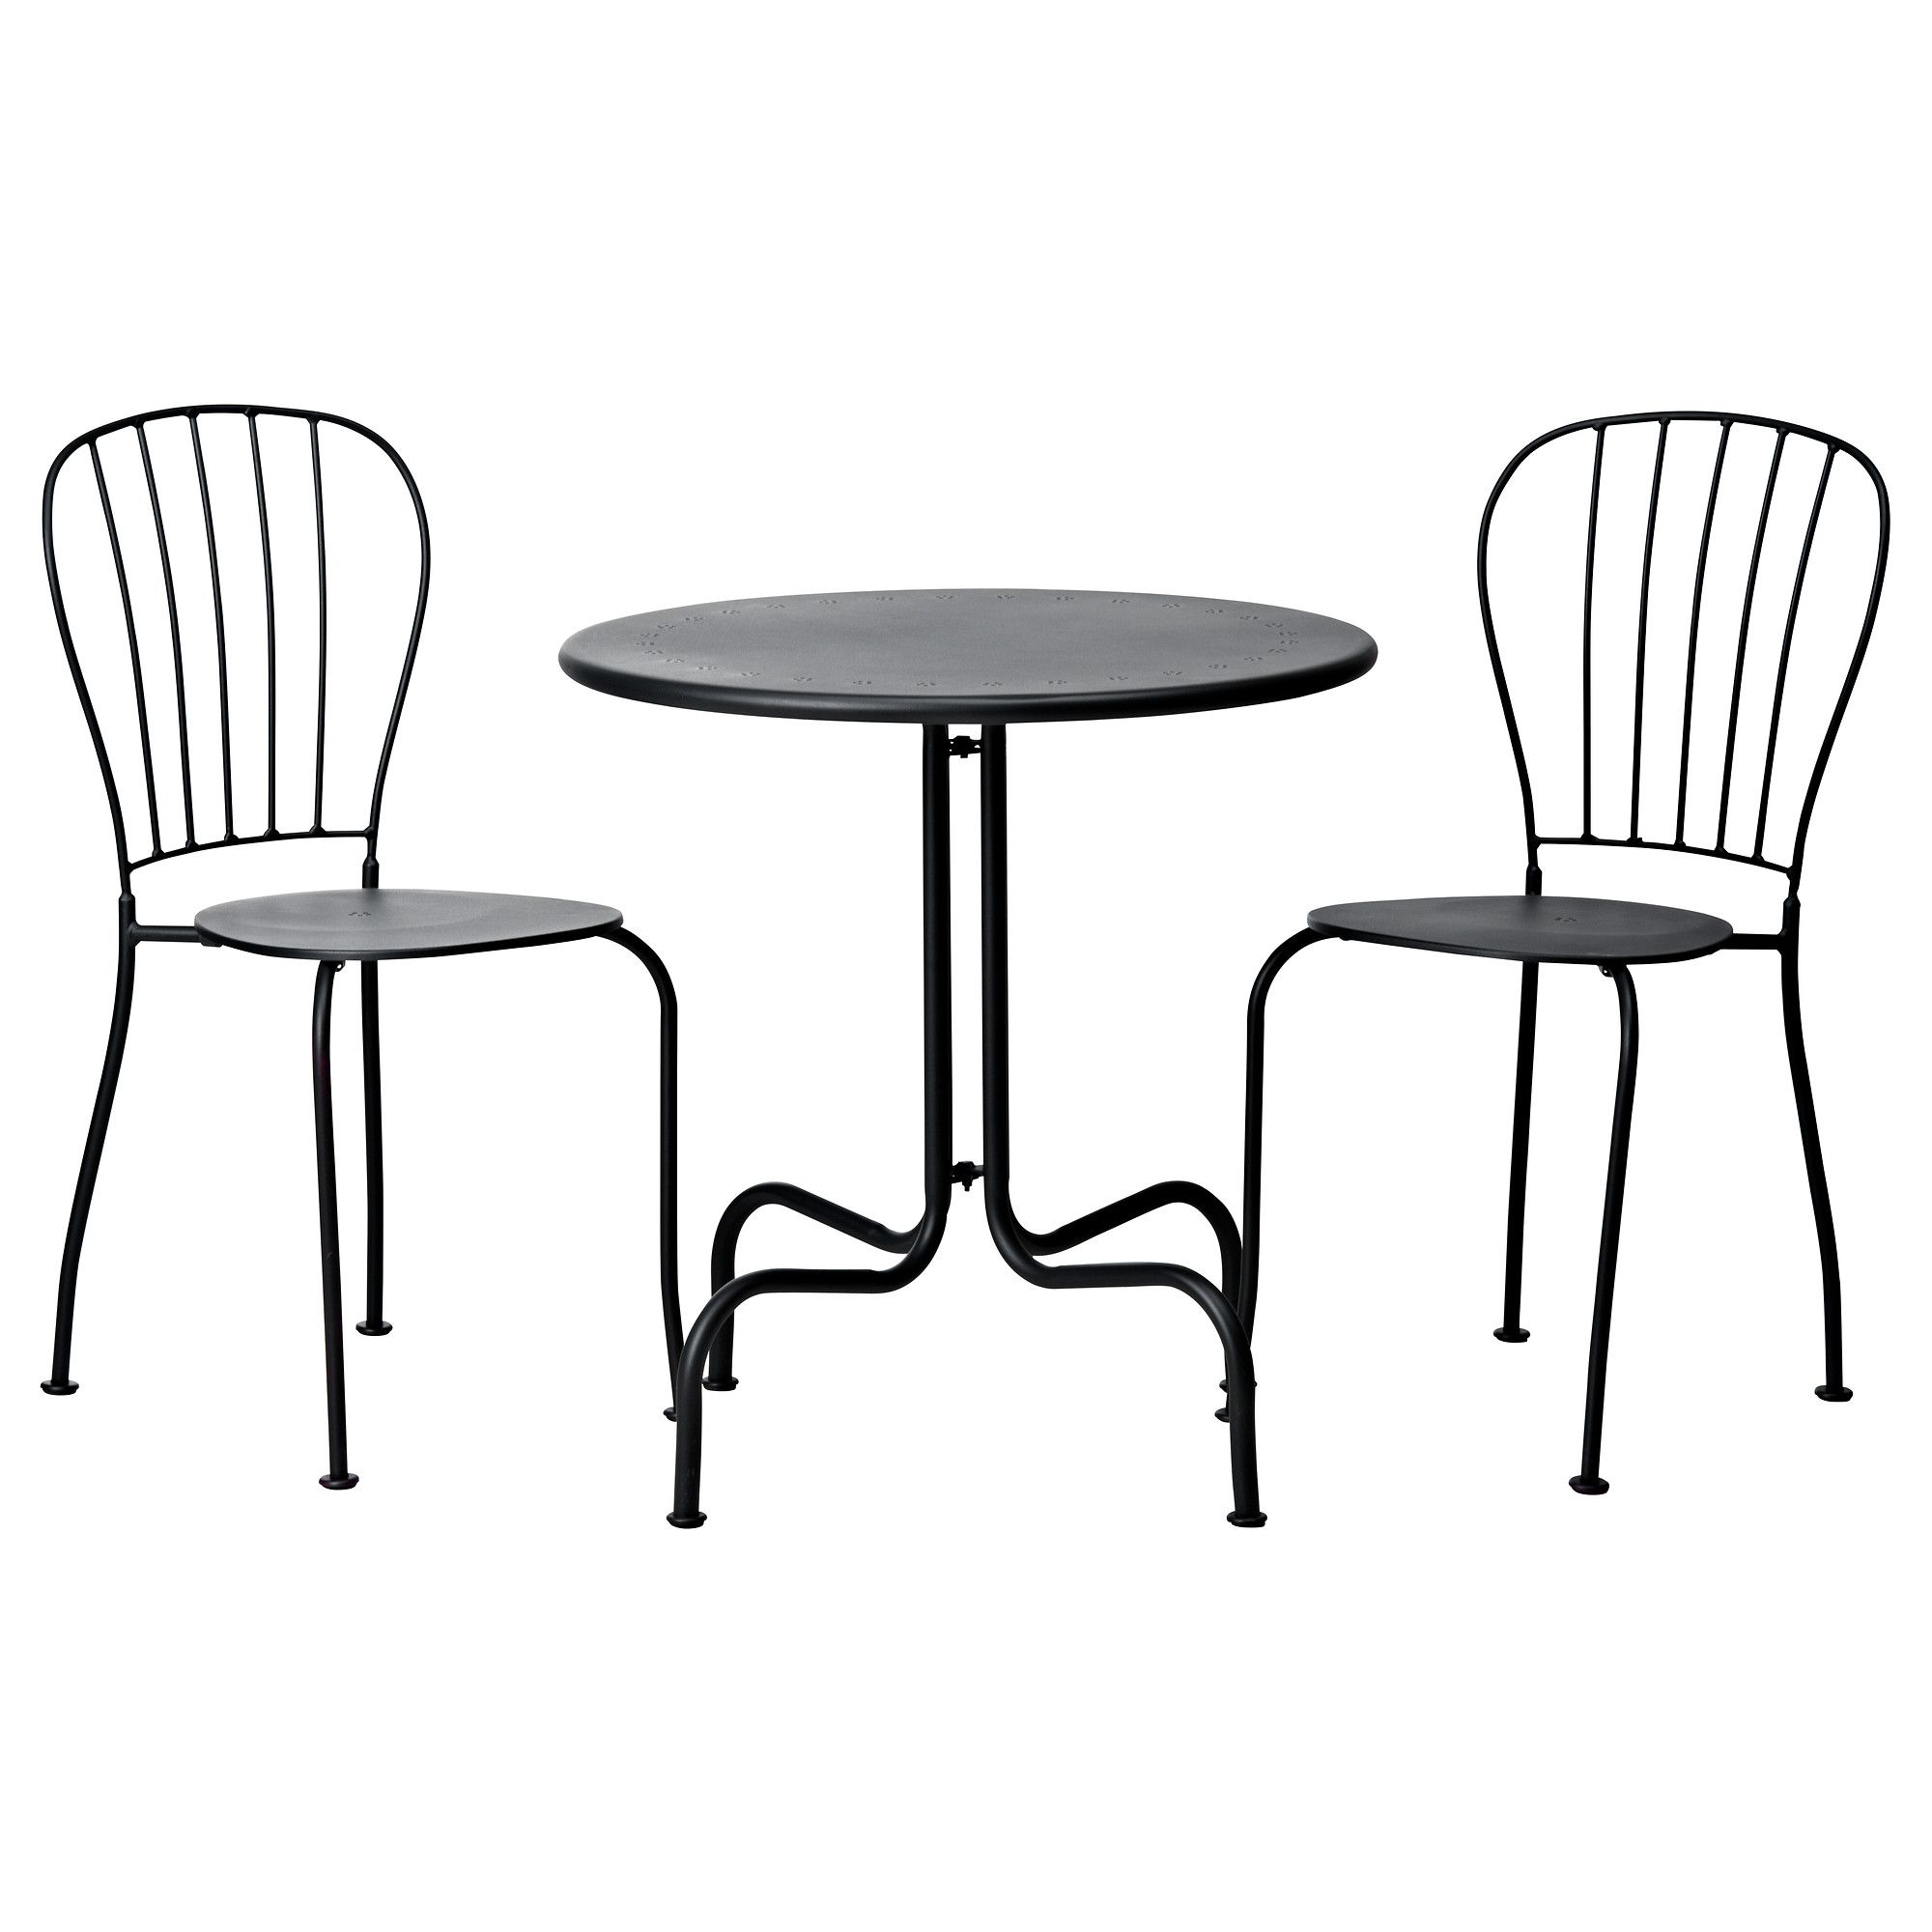 LCK Bistro set - gray - IKEA for front porch. Could spray paint any color